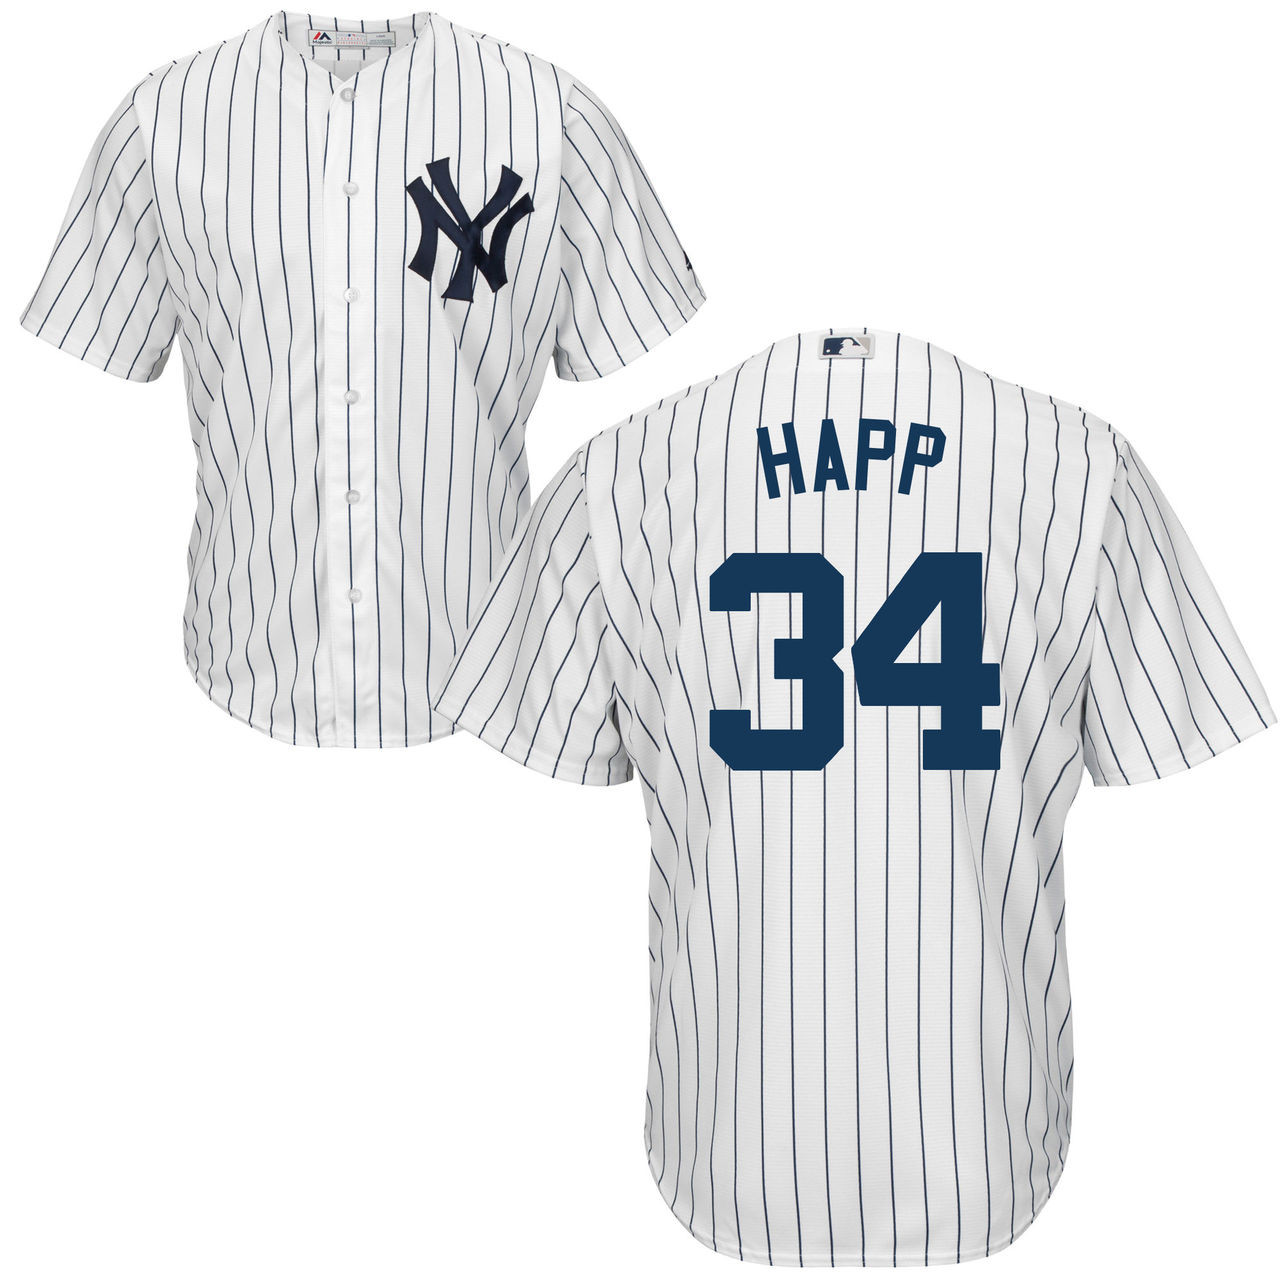 J.A. HAPP Jersey - NY Yankees Replica Adult Home Jersey photo